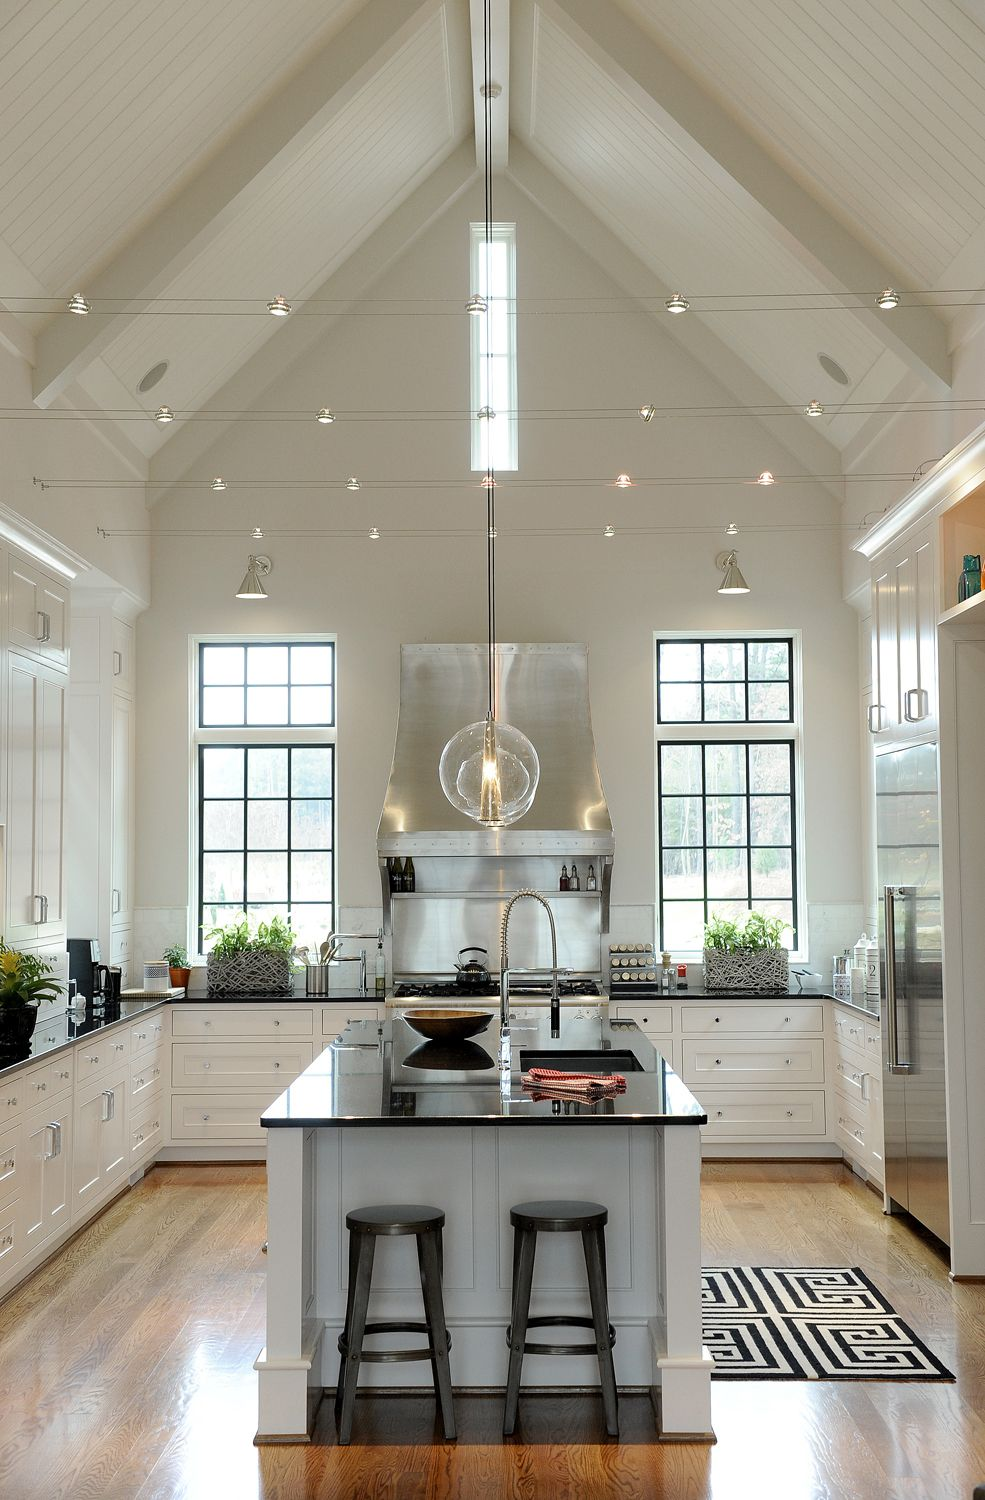 Vaulted Ceilings History Pros Cons And Inspirational - Lighting for cathedral ceiling in the kitchen